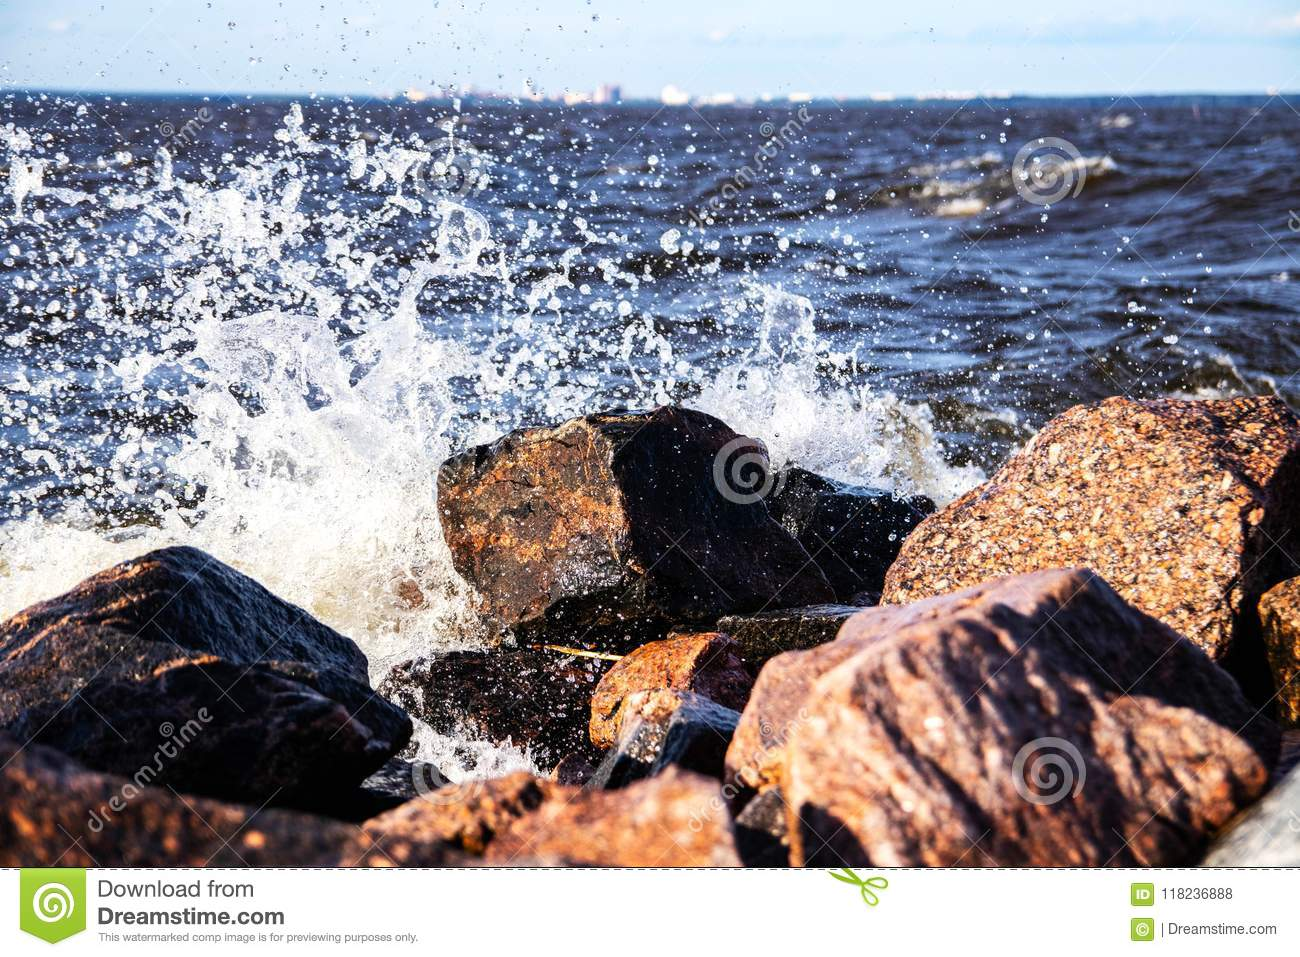 Water attacks a stone